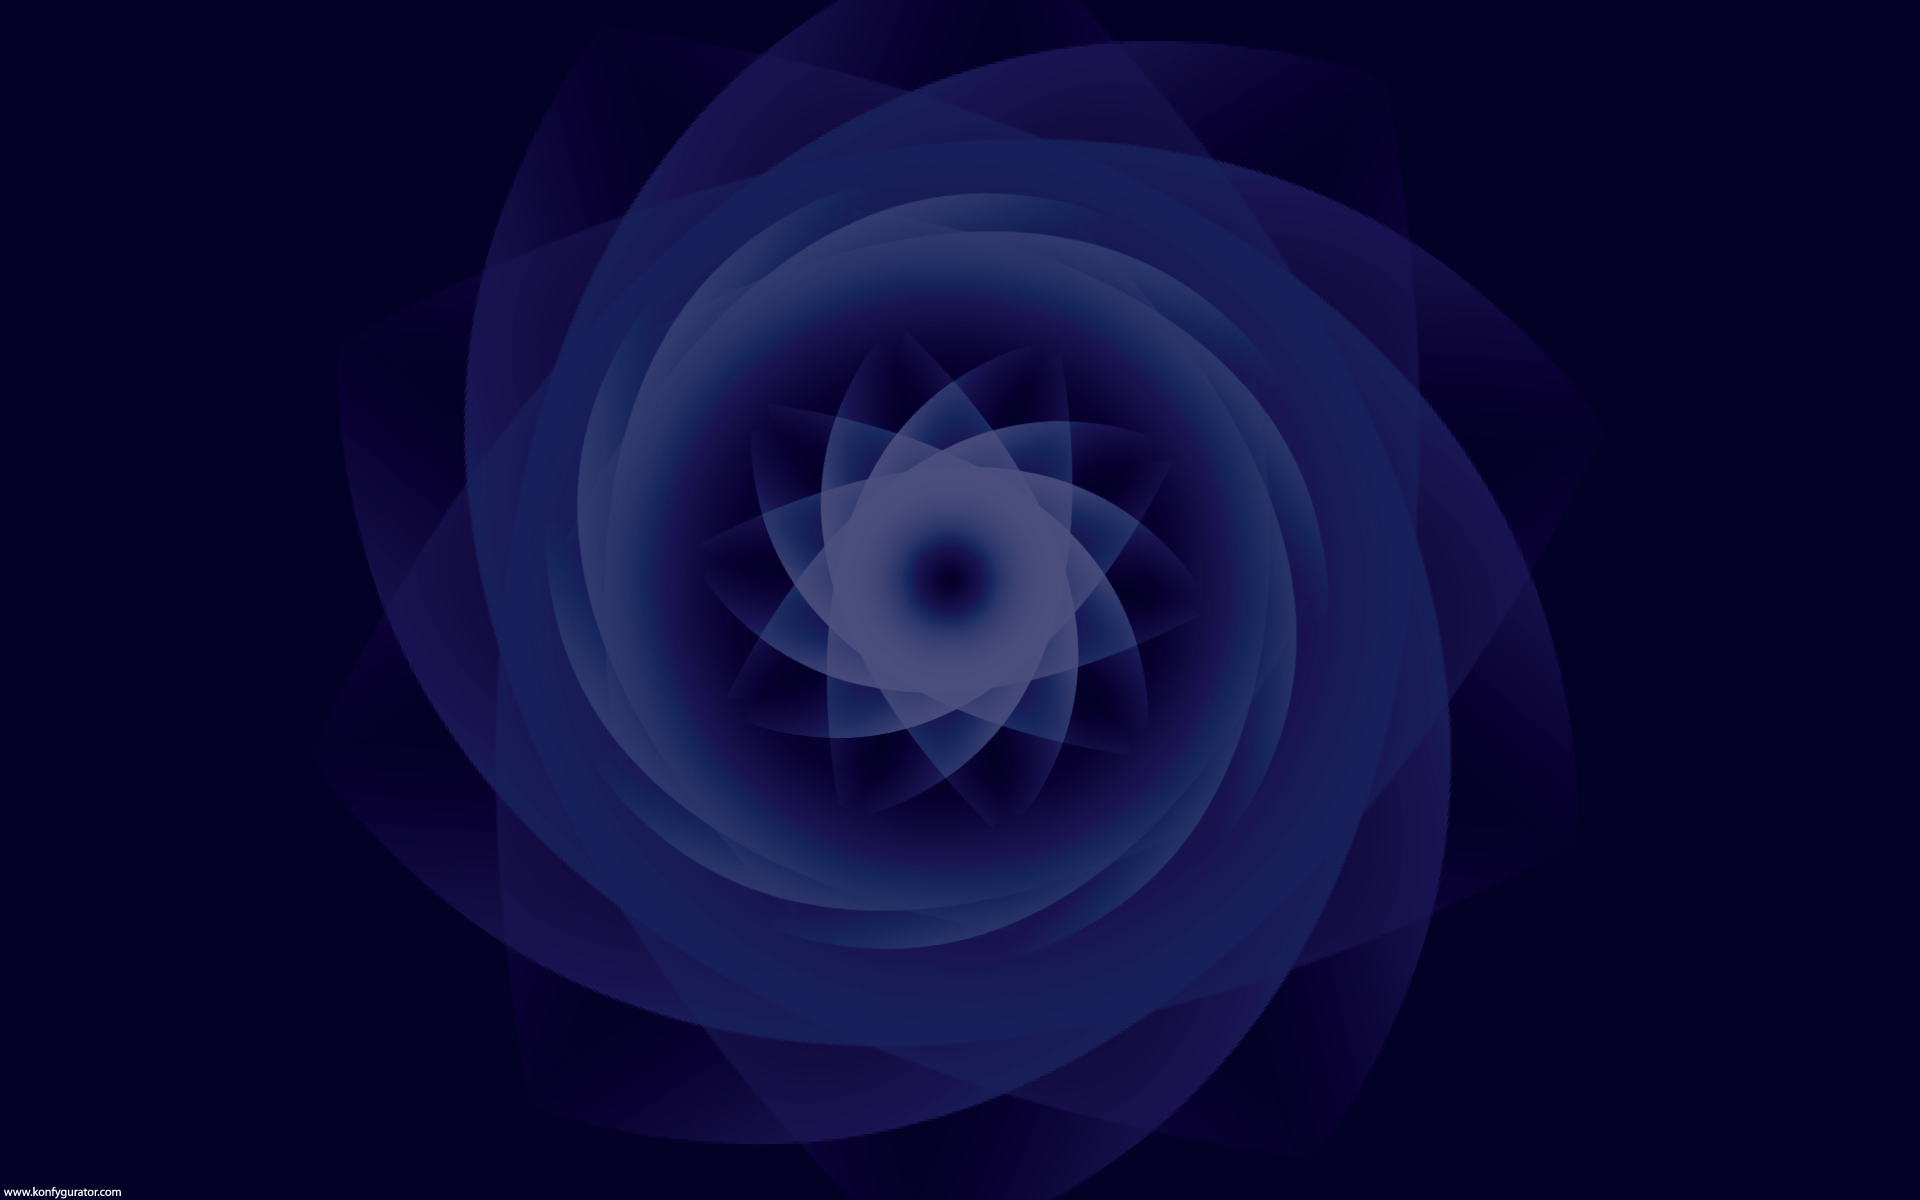 HD Wallpapers - 3D & Abstract - flower, blue, spiral